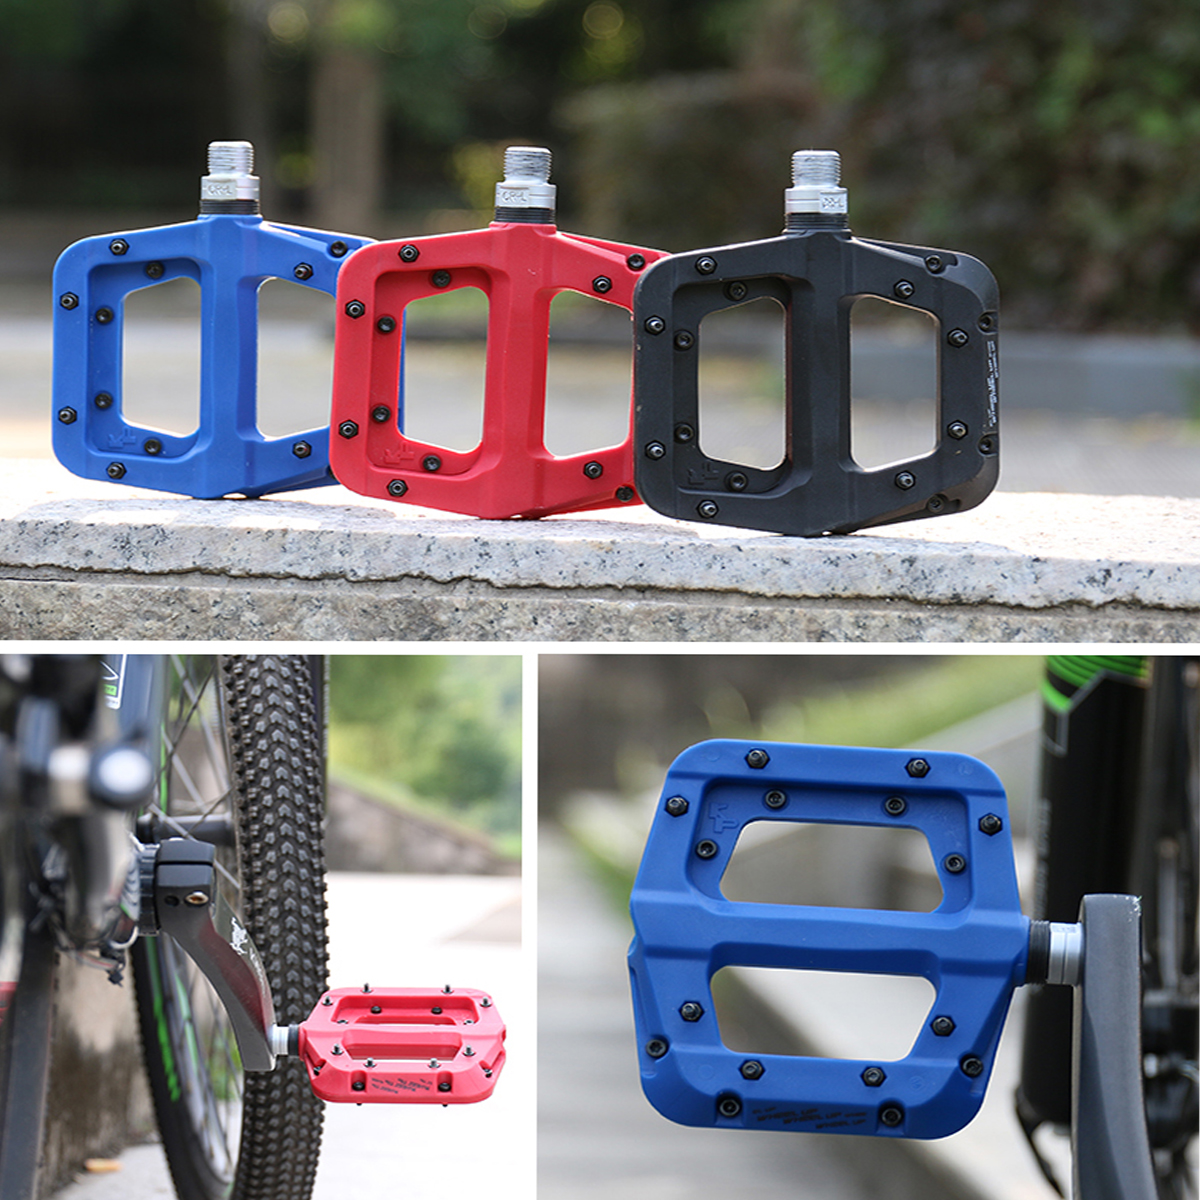 WHEEL UP 9/16 Nylon Fiber Bicycle Pedals with 3 Bearings Ultralight Non-slip Flat Platform Pedals